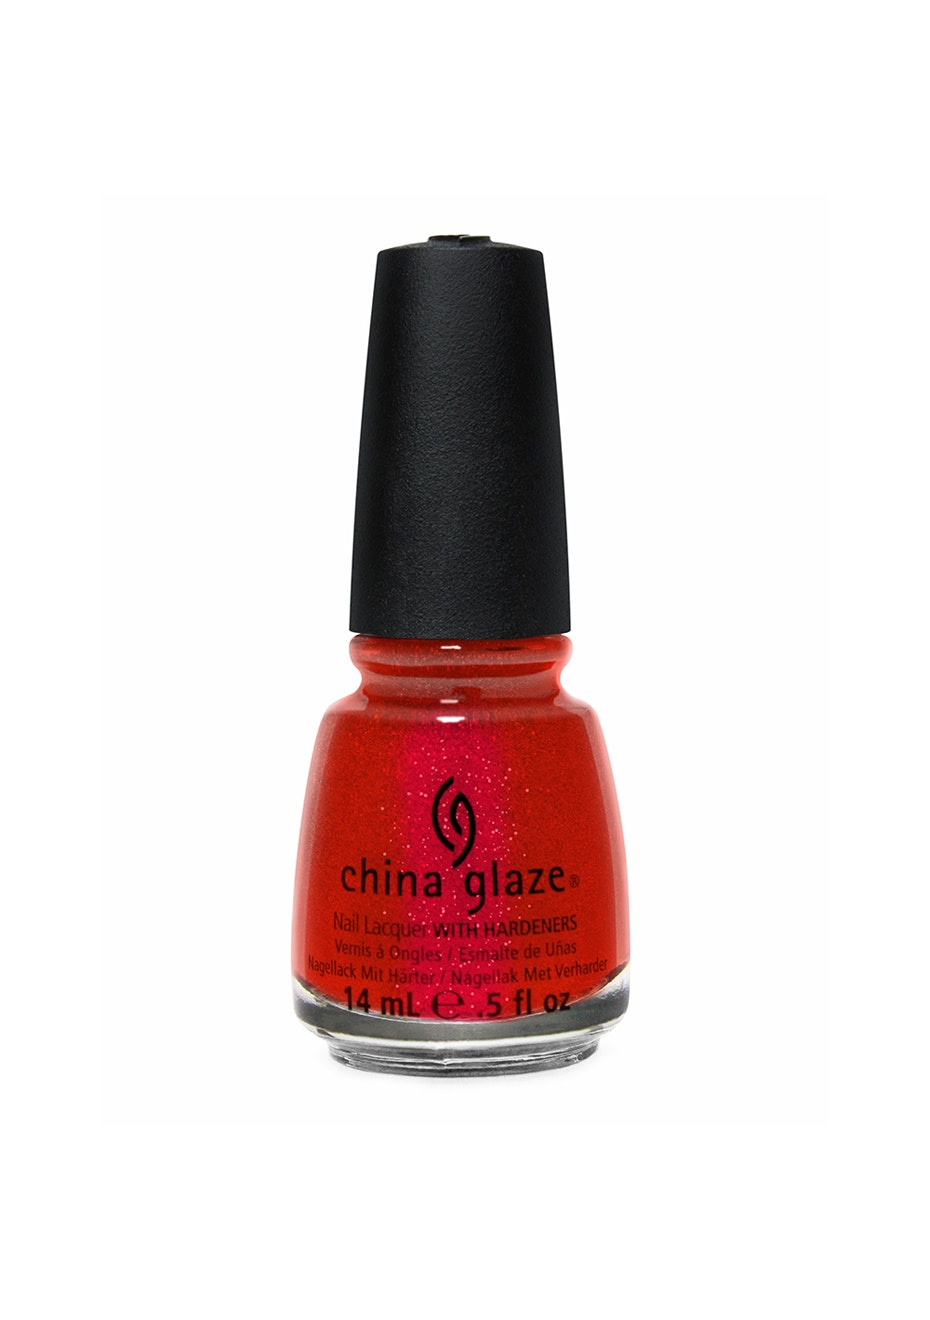 China Glaze Summer Days Collection #714 CHERRY PIE